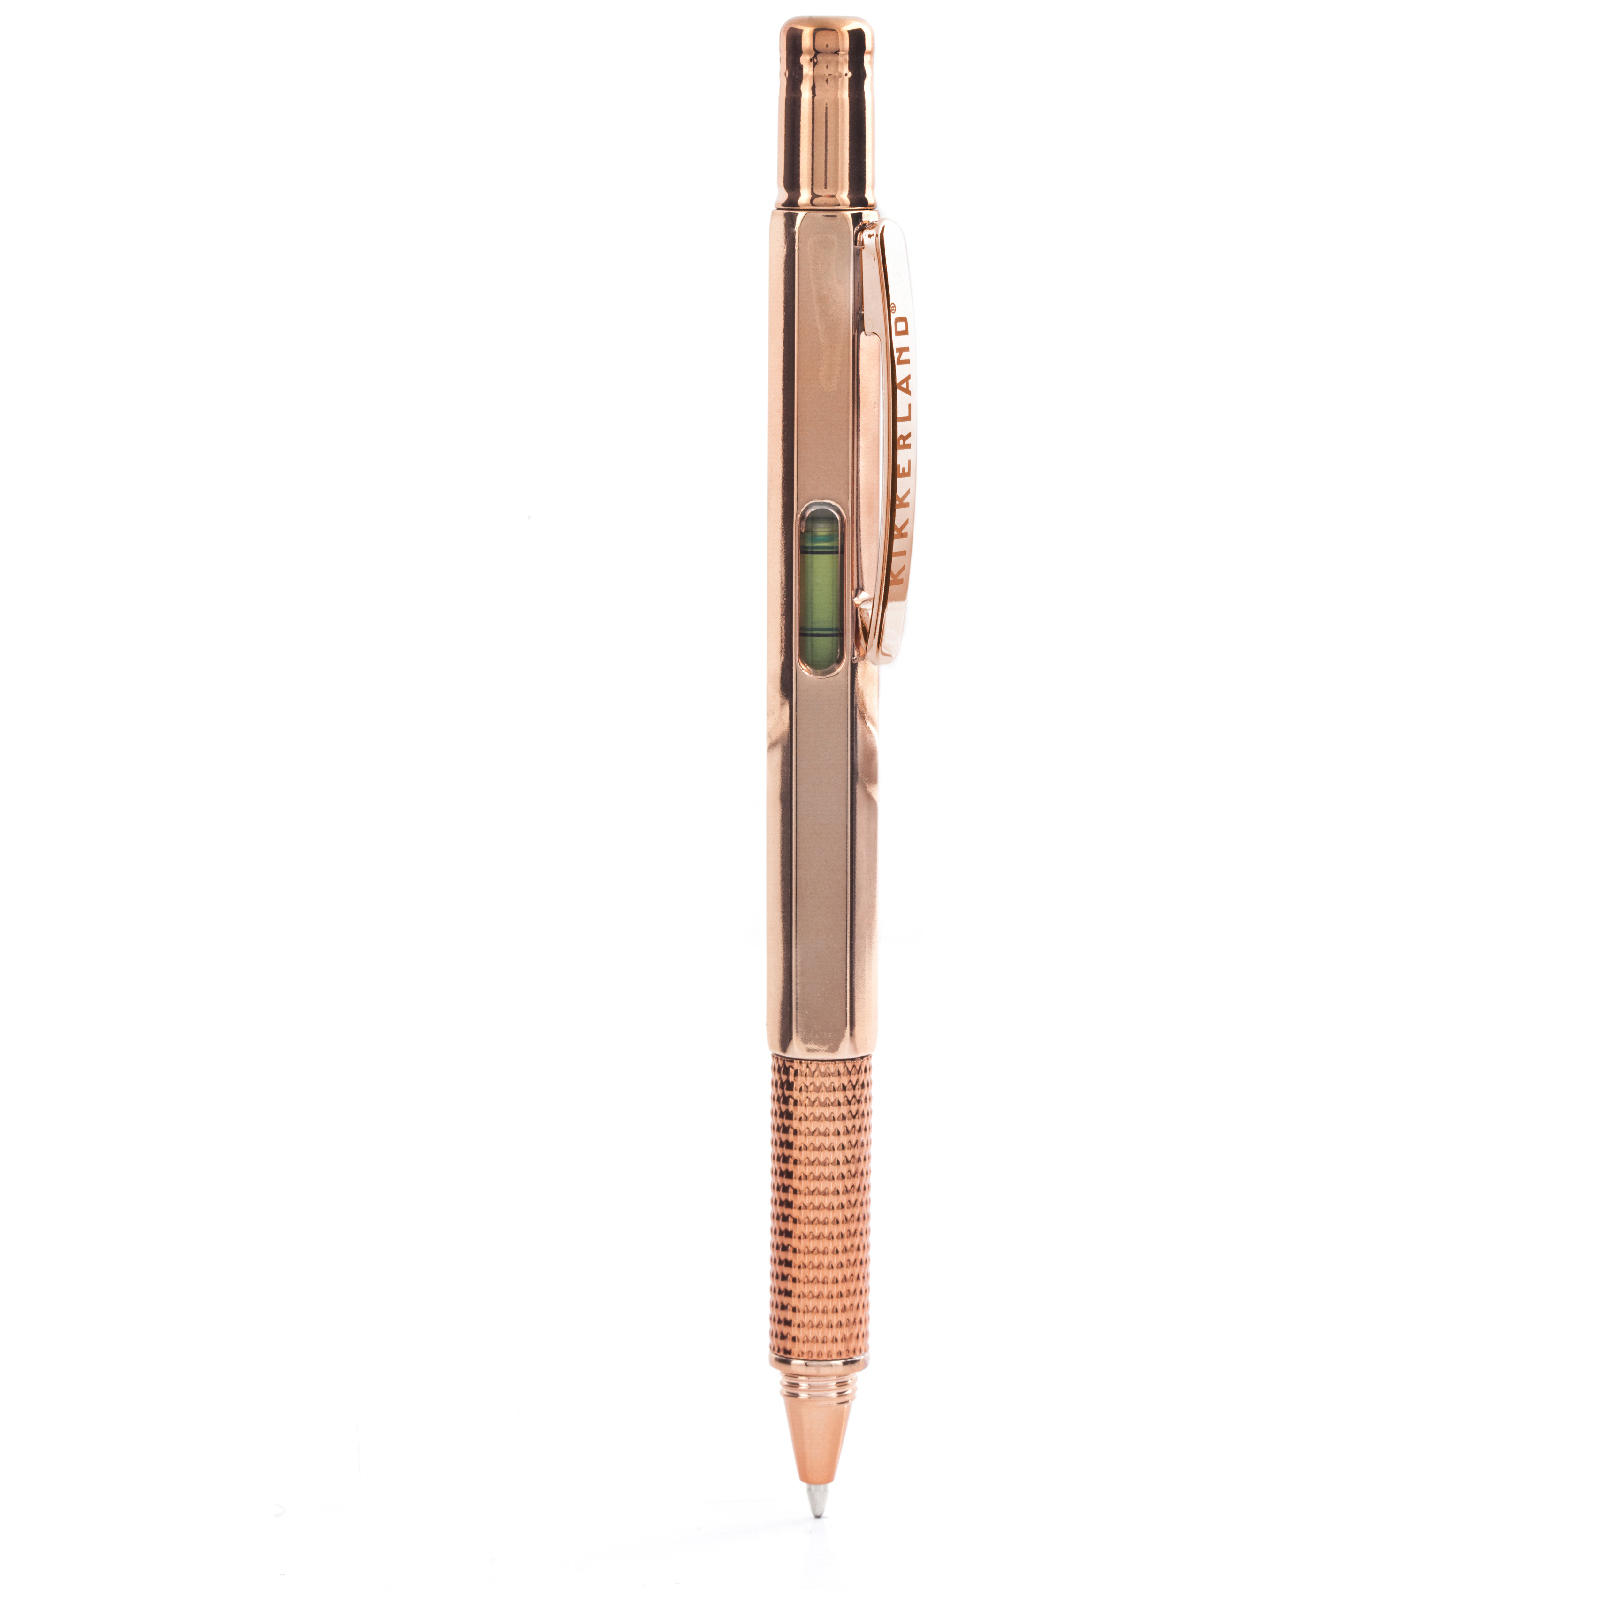 Copper 3-in-1 Pen Tool